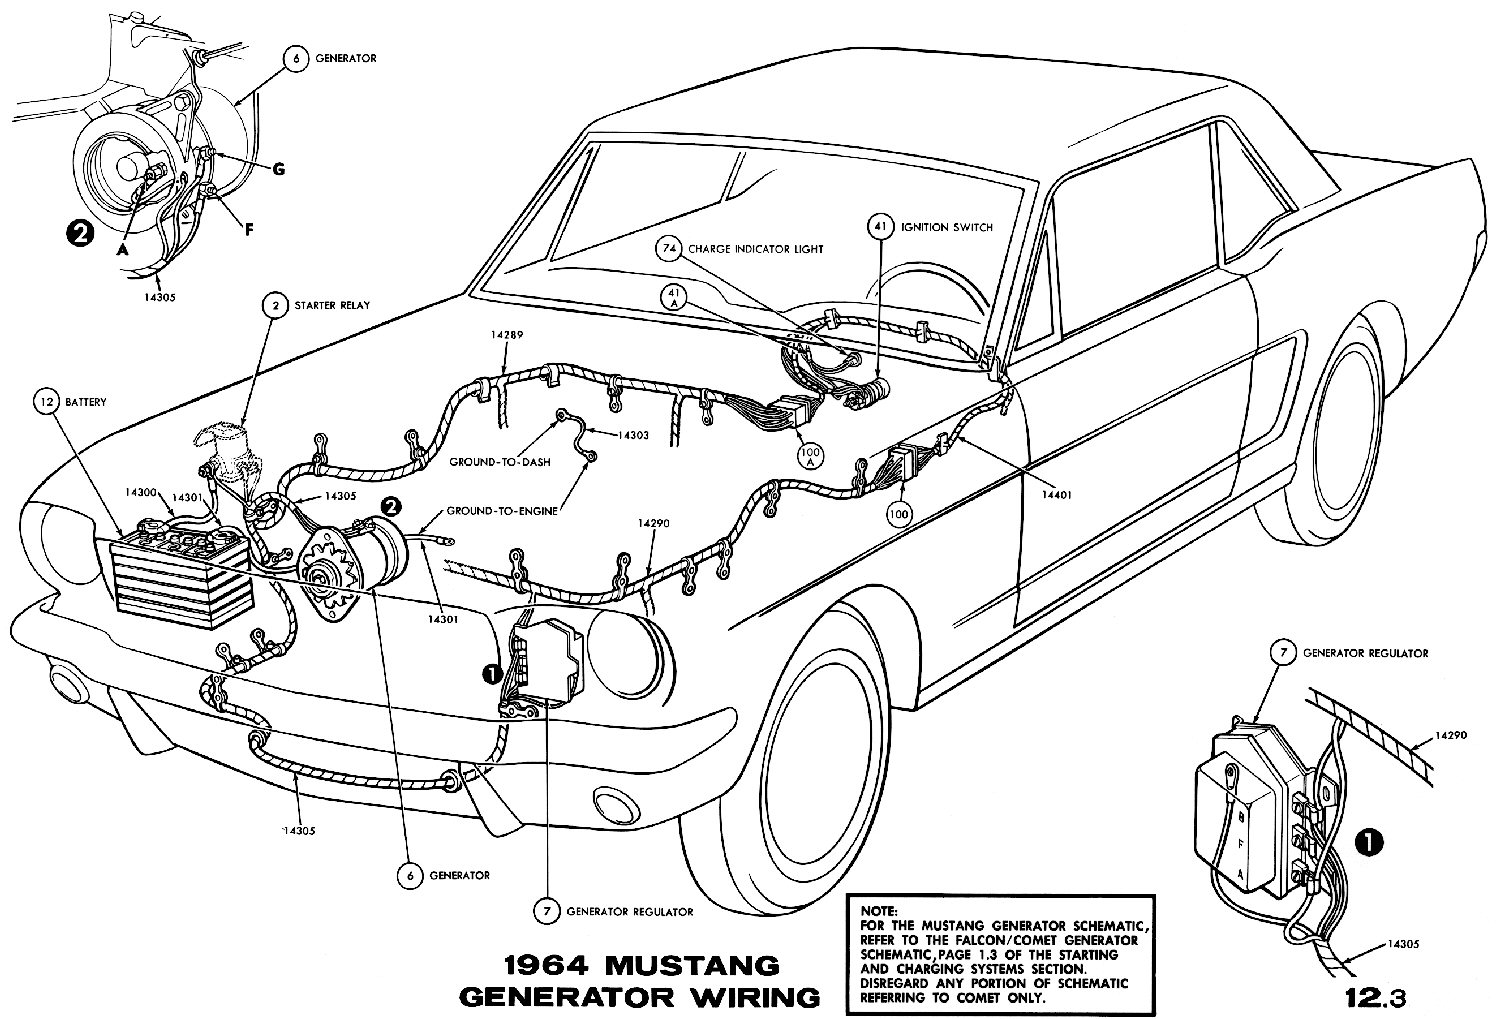 1964 Ford Mustang Wiring Diagram Schematic Trusted Ignition Switch Diagrams Average Joe Restoration Rh Averagejoerestoration Com Electrical